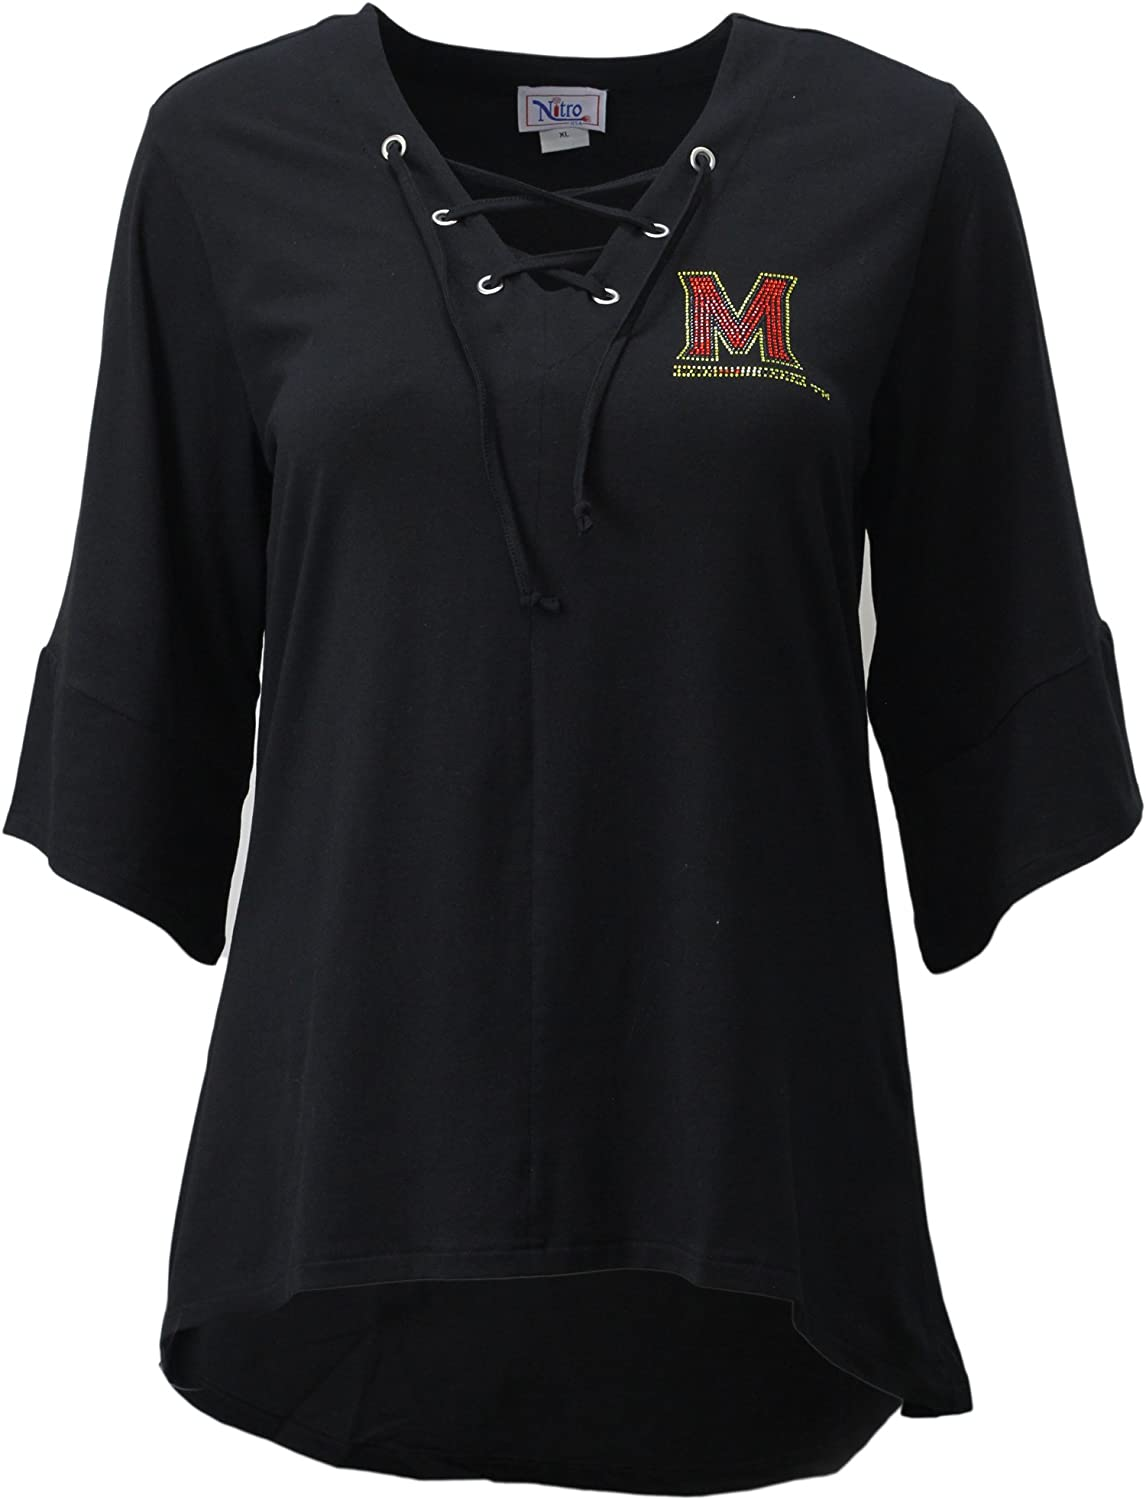 Black Nitro USA NCAA Maryland Terrapins Womens Collegiate Lace Up Tunic Top Size 1X